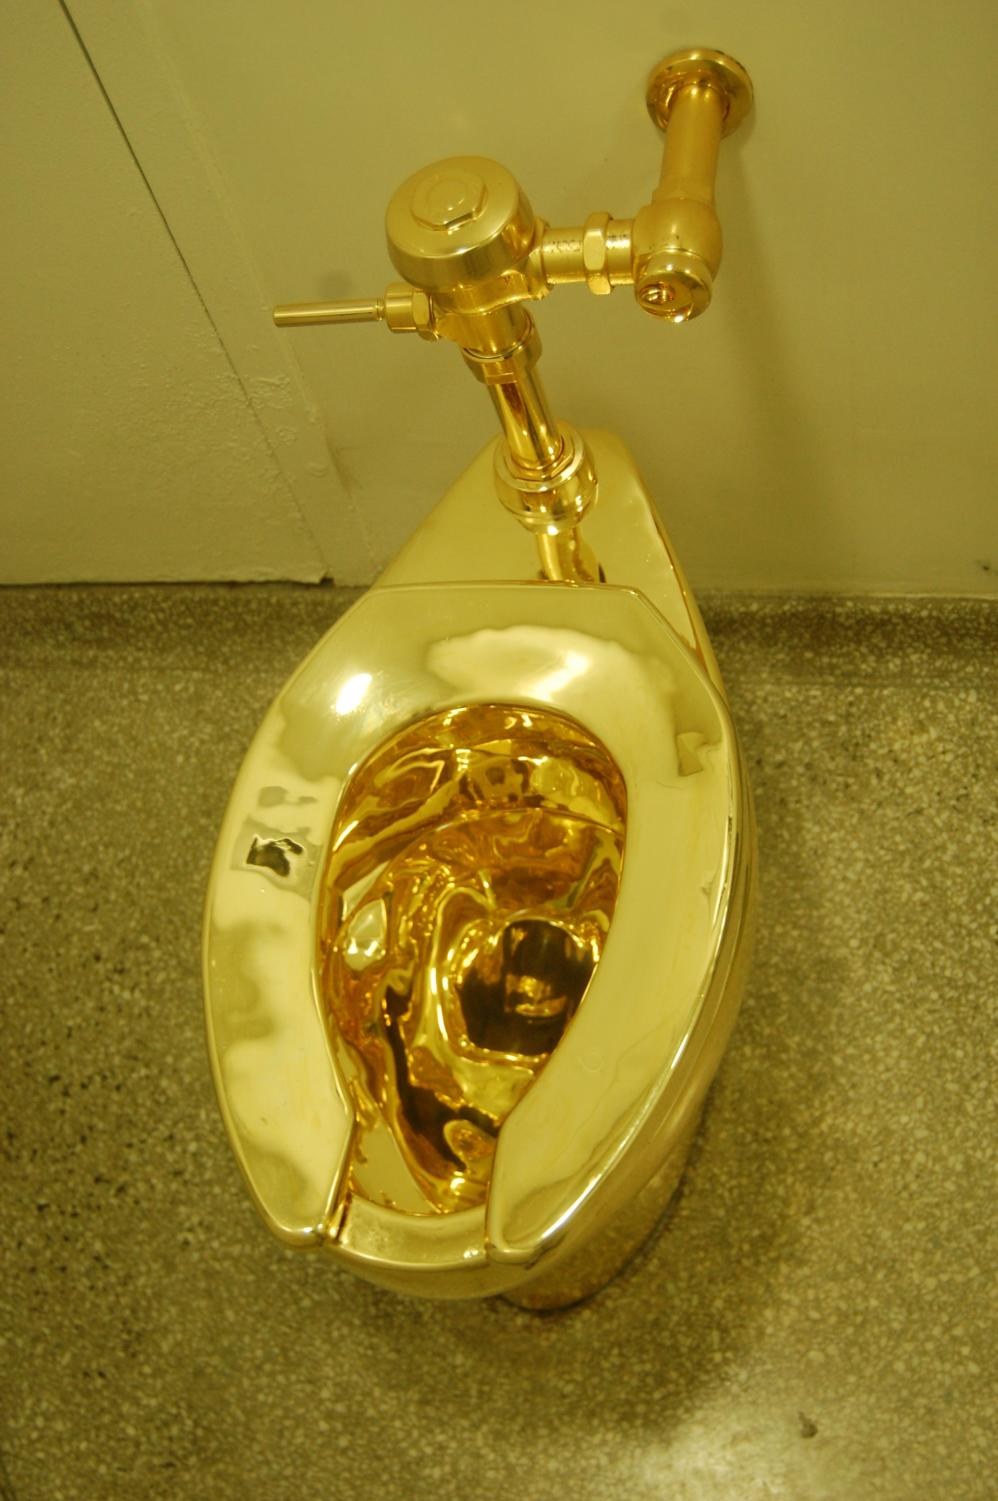 A solid gold toilet was offered to the White House.